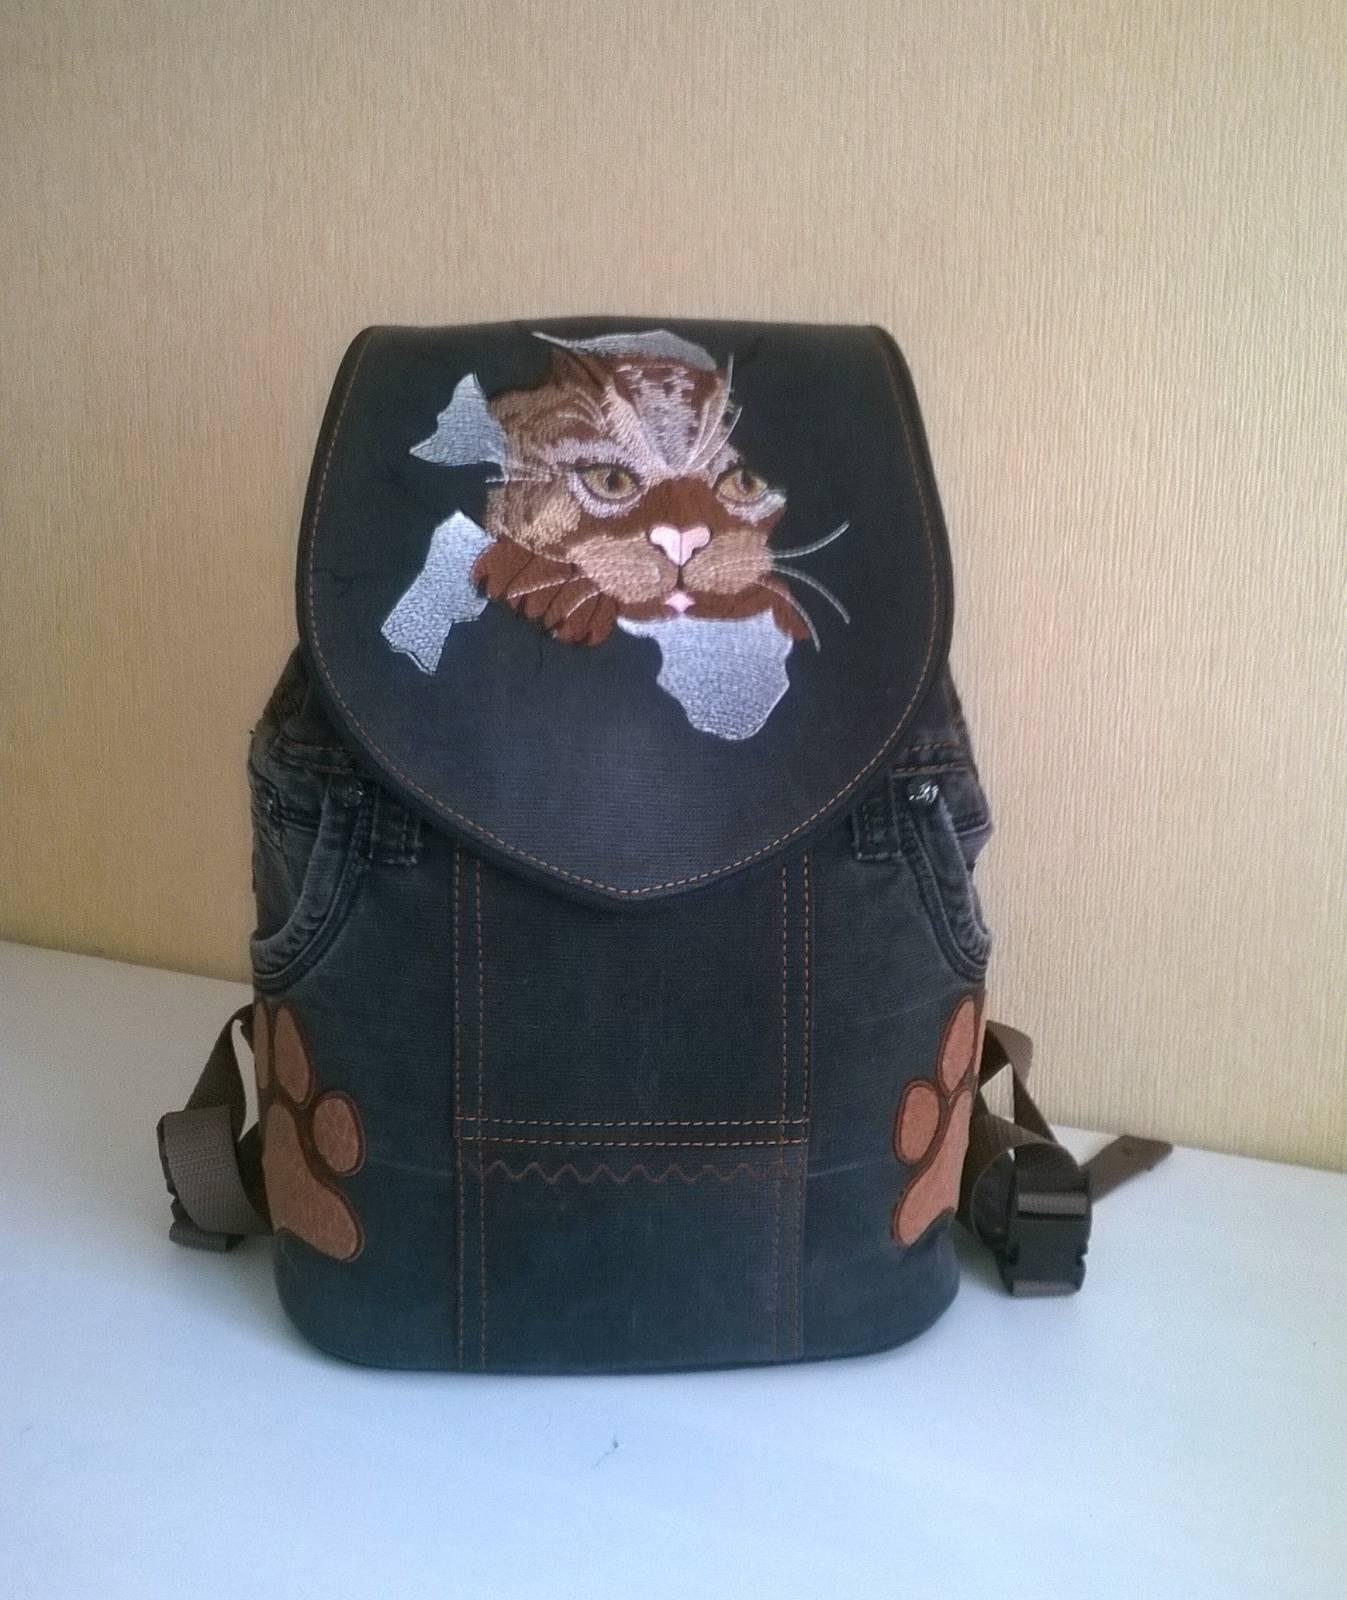 Backpack with Angry cat free embroidery design